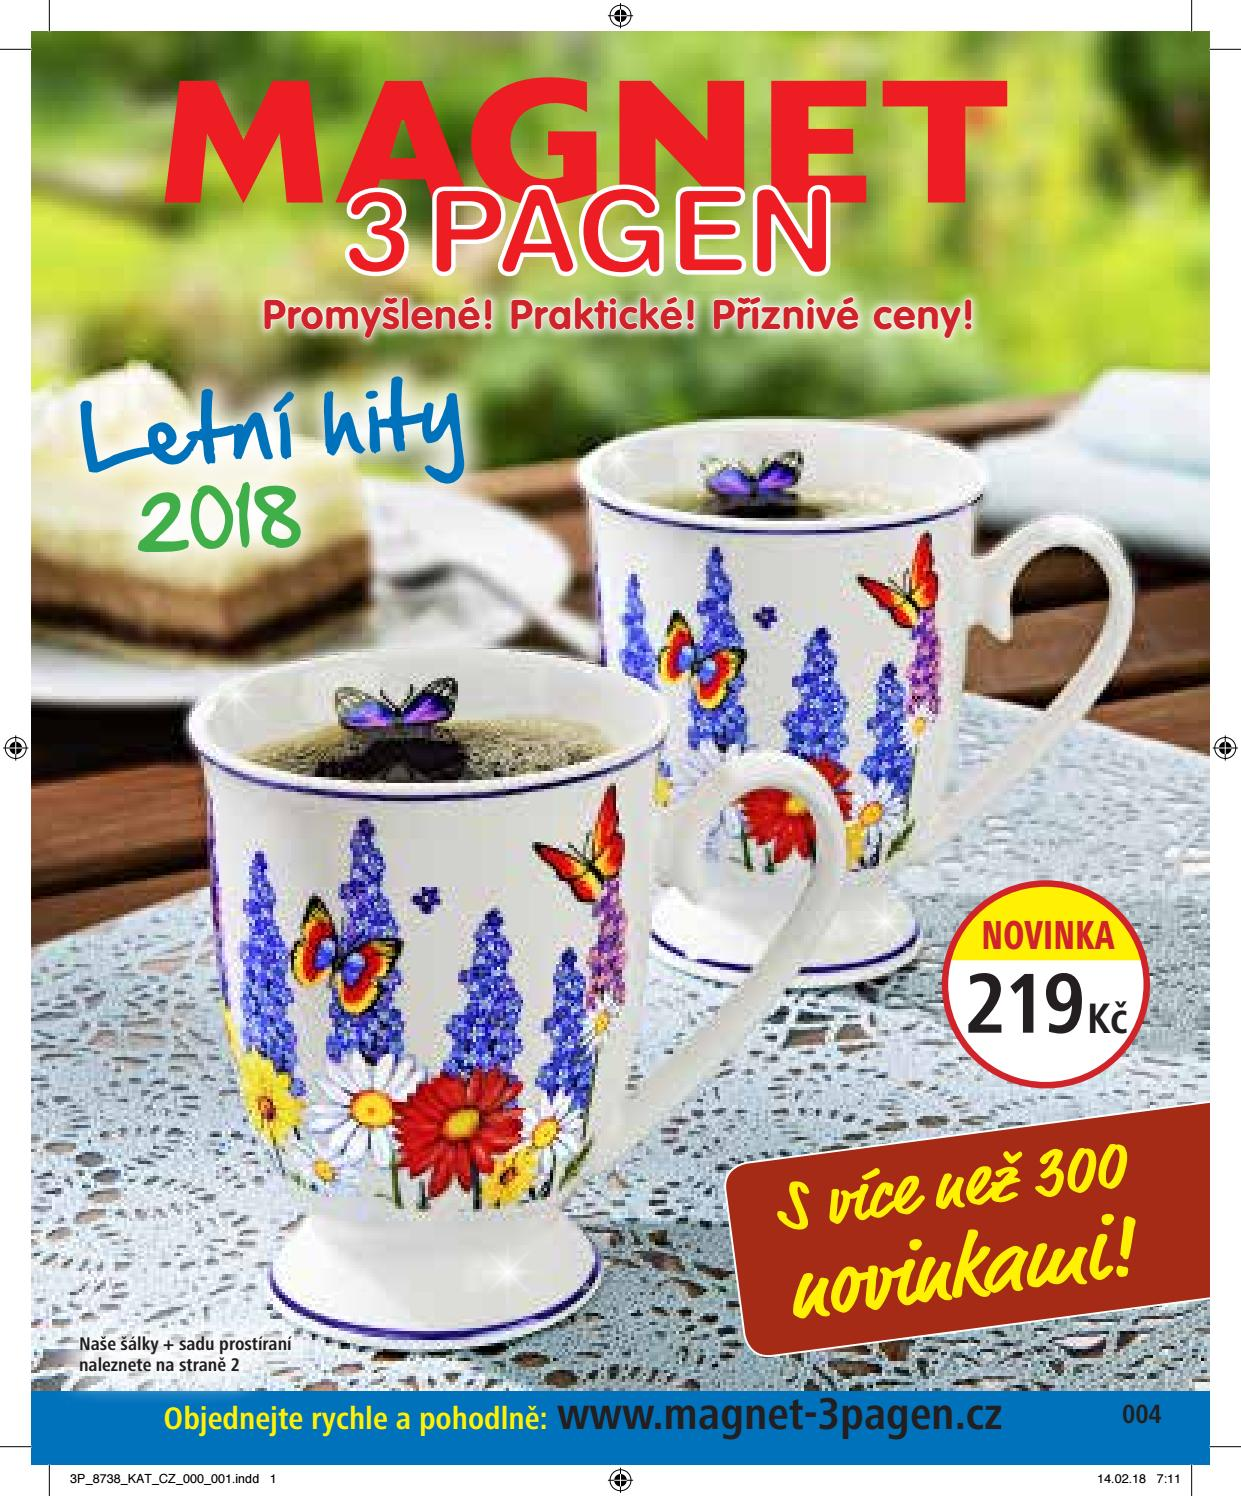 8d813a199de Letní hity 2018 by packway - issuu